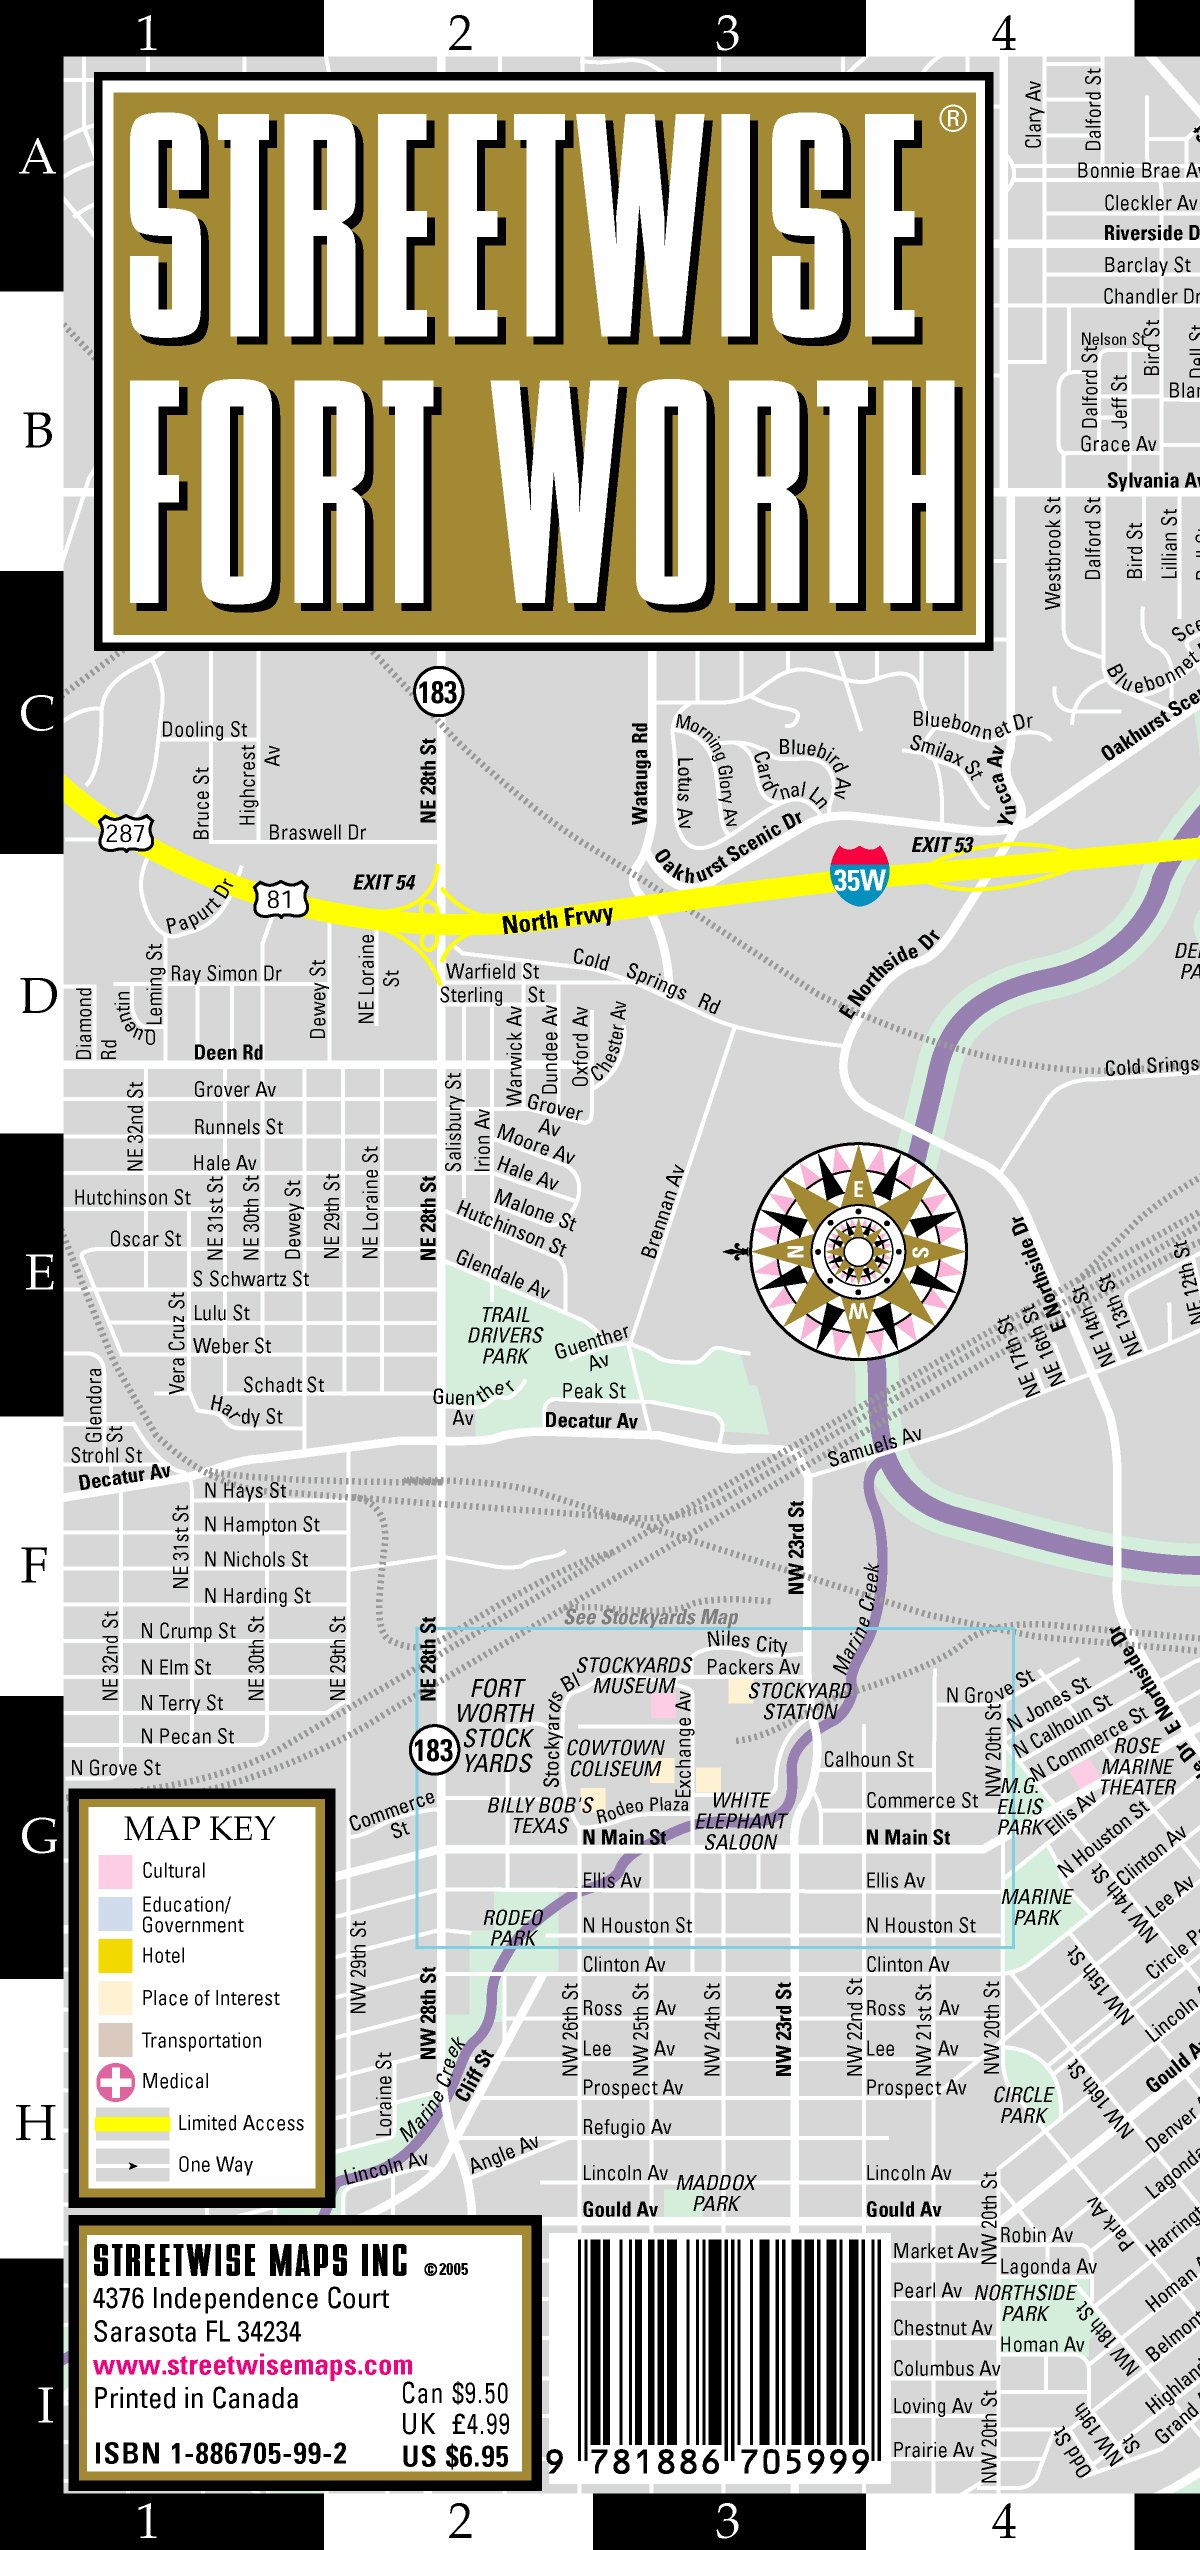 Download Streetwise Fort Worth Map - Laminated City Center Street Map of Fort Worth, Texas - Folding pocket size travel map with Trinity Expess routes pdf